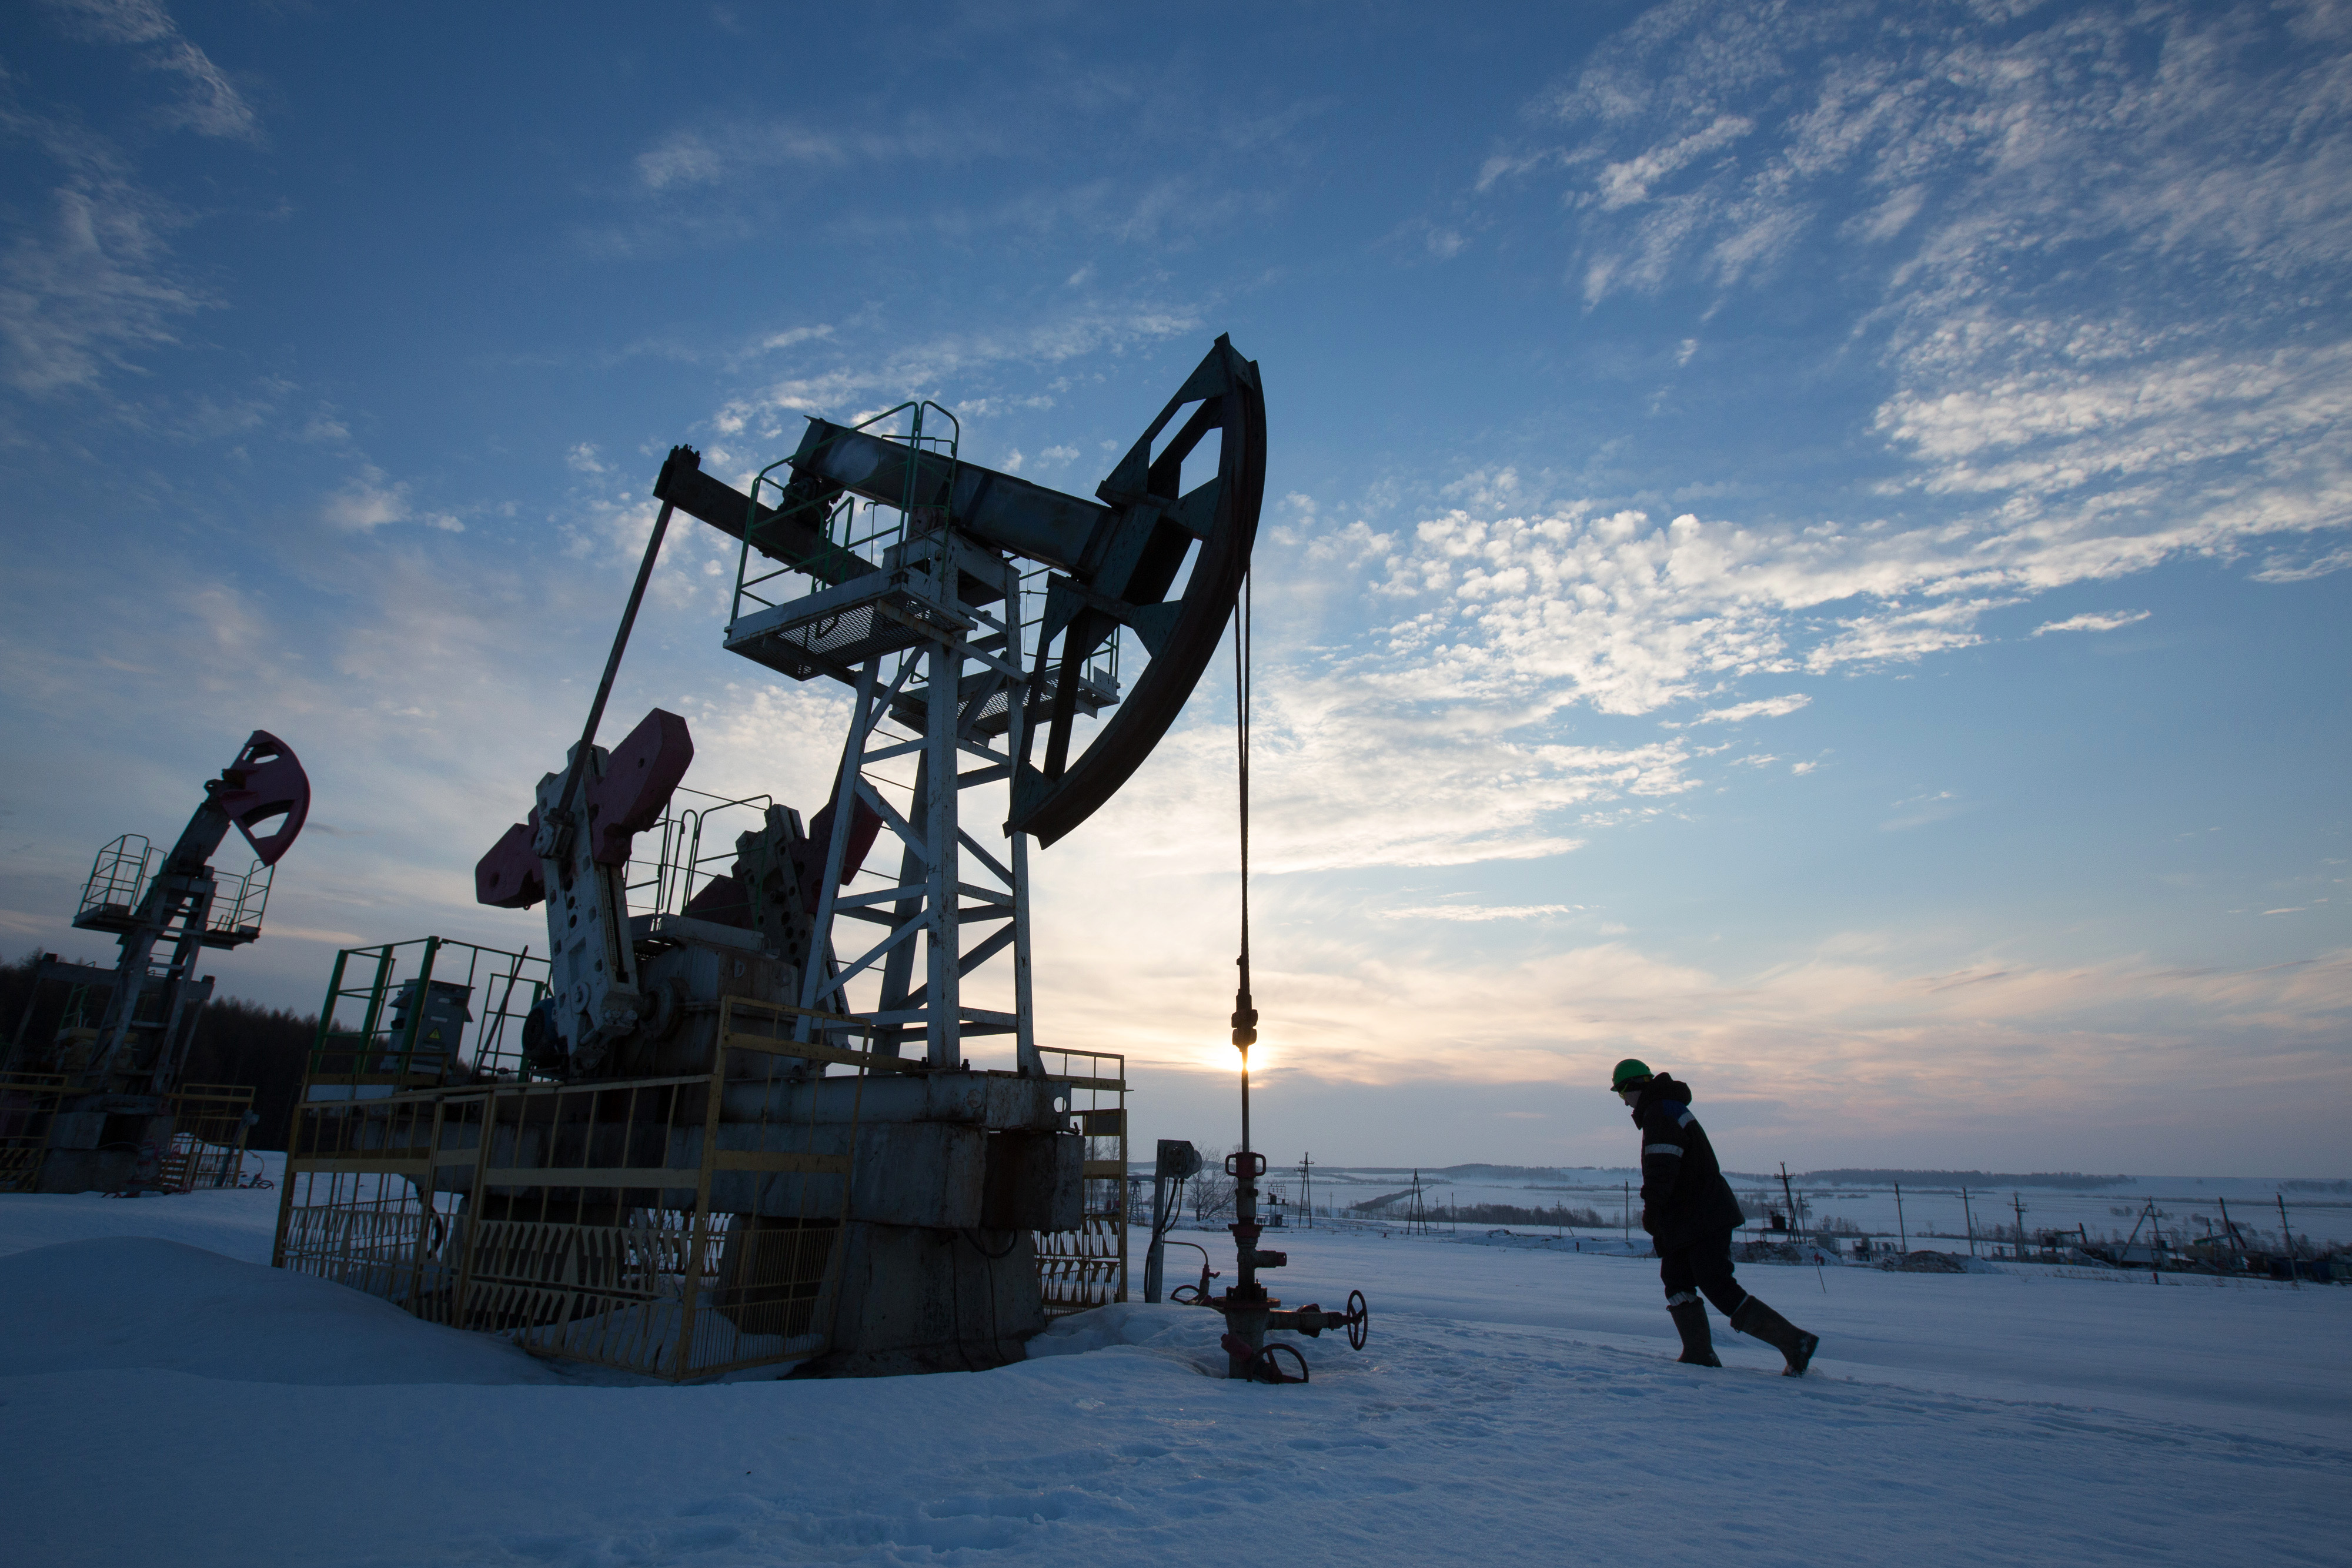 An oil worker inspects a pumping jack, also known as a 'nodding donkey,' during drilling operations in an oilfield operated by Bashneft PAO in the village of Otrada, 150kms from Ufa, Russia, on Saturday, March 5, 2016.